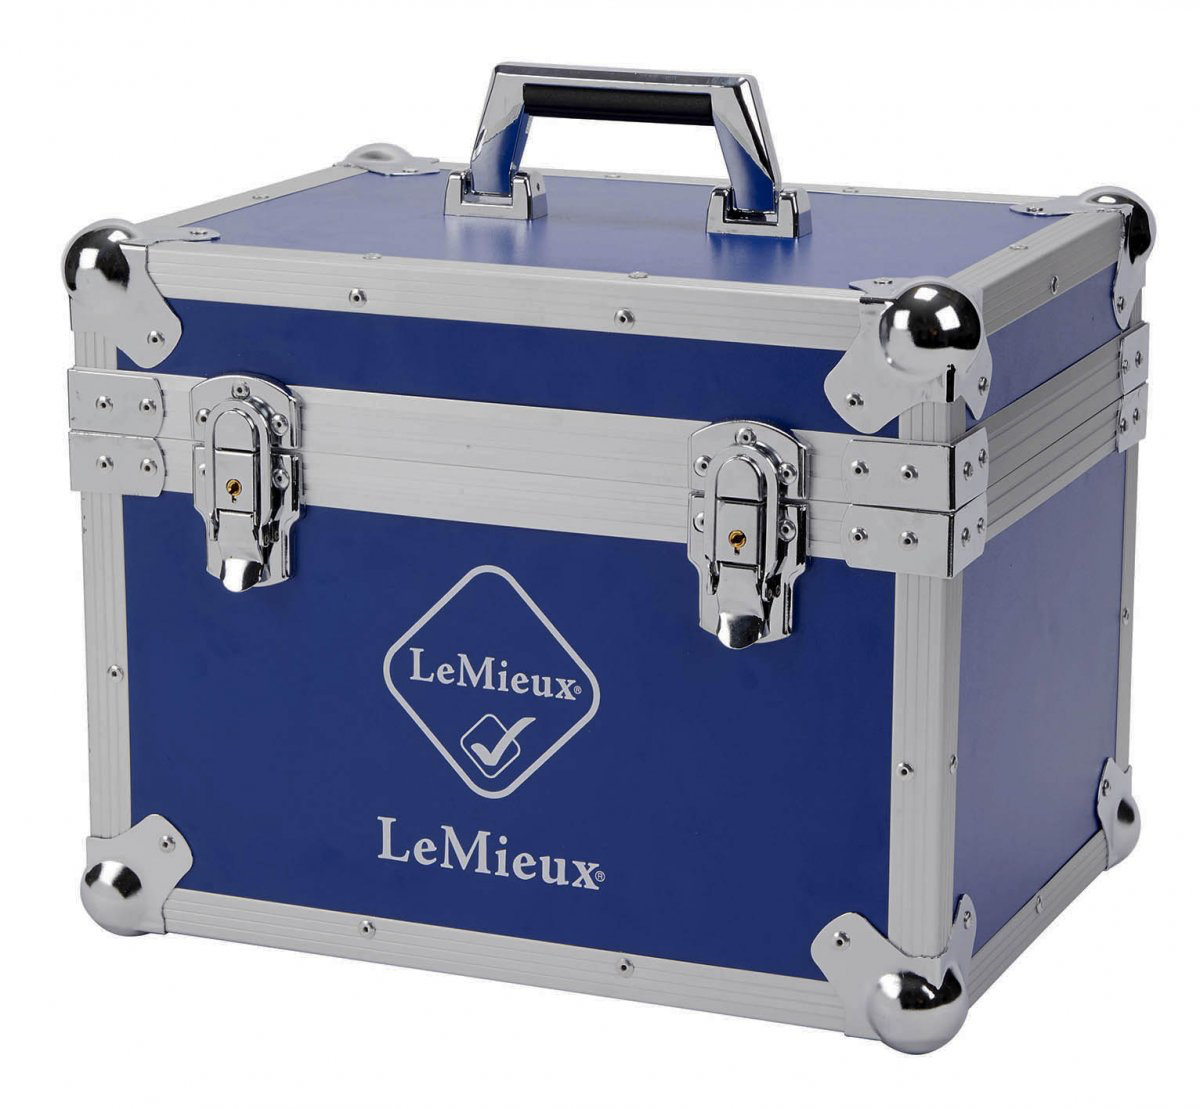 Fair Price Equestrian | Lemieux Hardshell Grooming Box